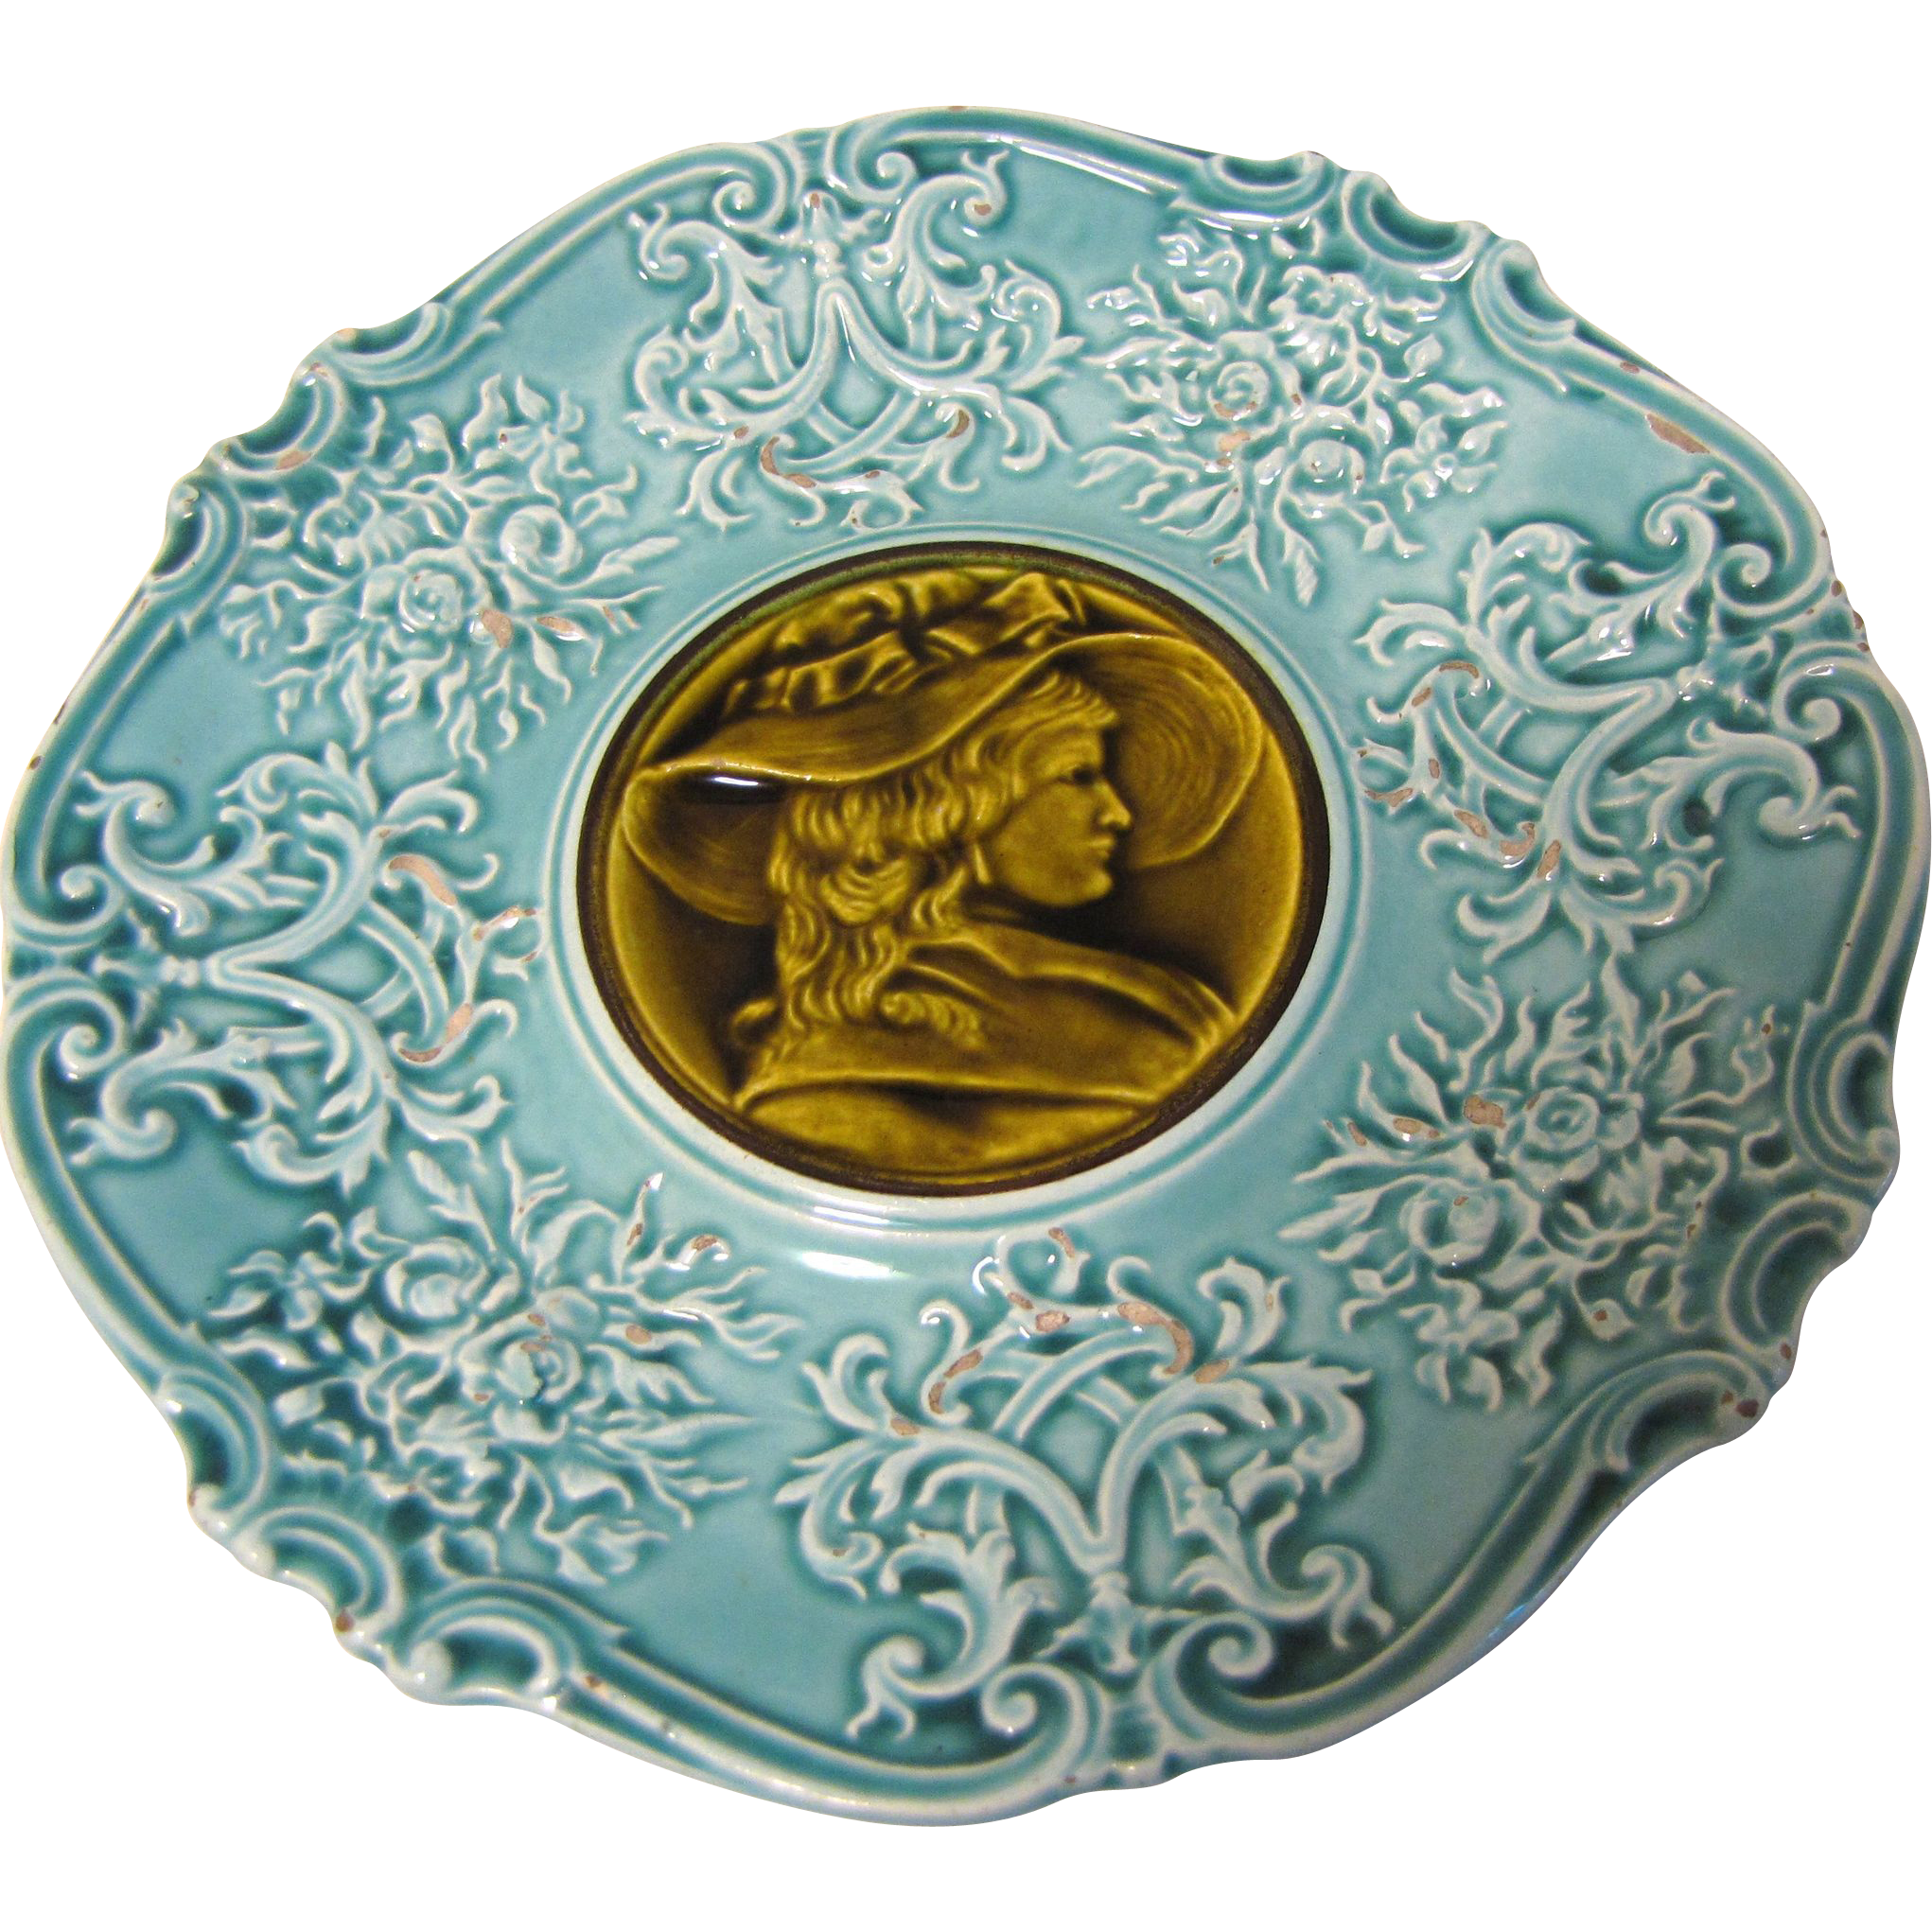 Vintage Majolica Plate, Turquoise with Olive-Brown Center, Lady with Large Hat